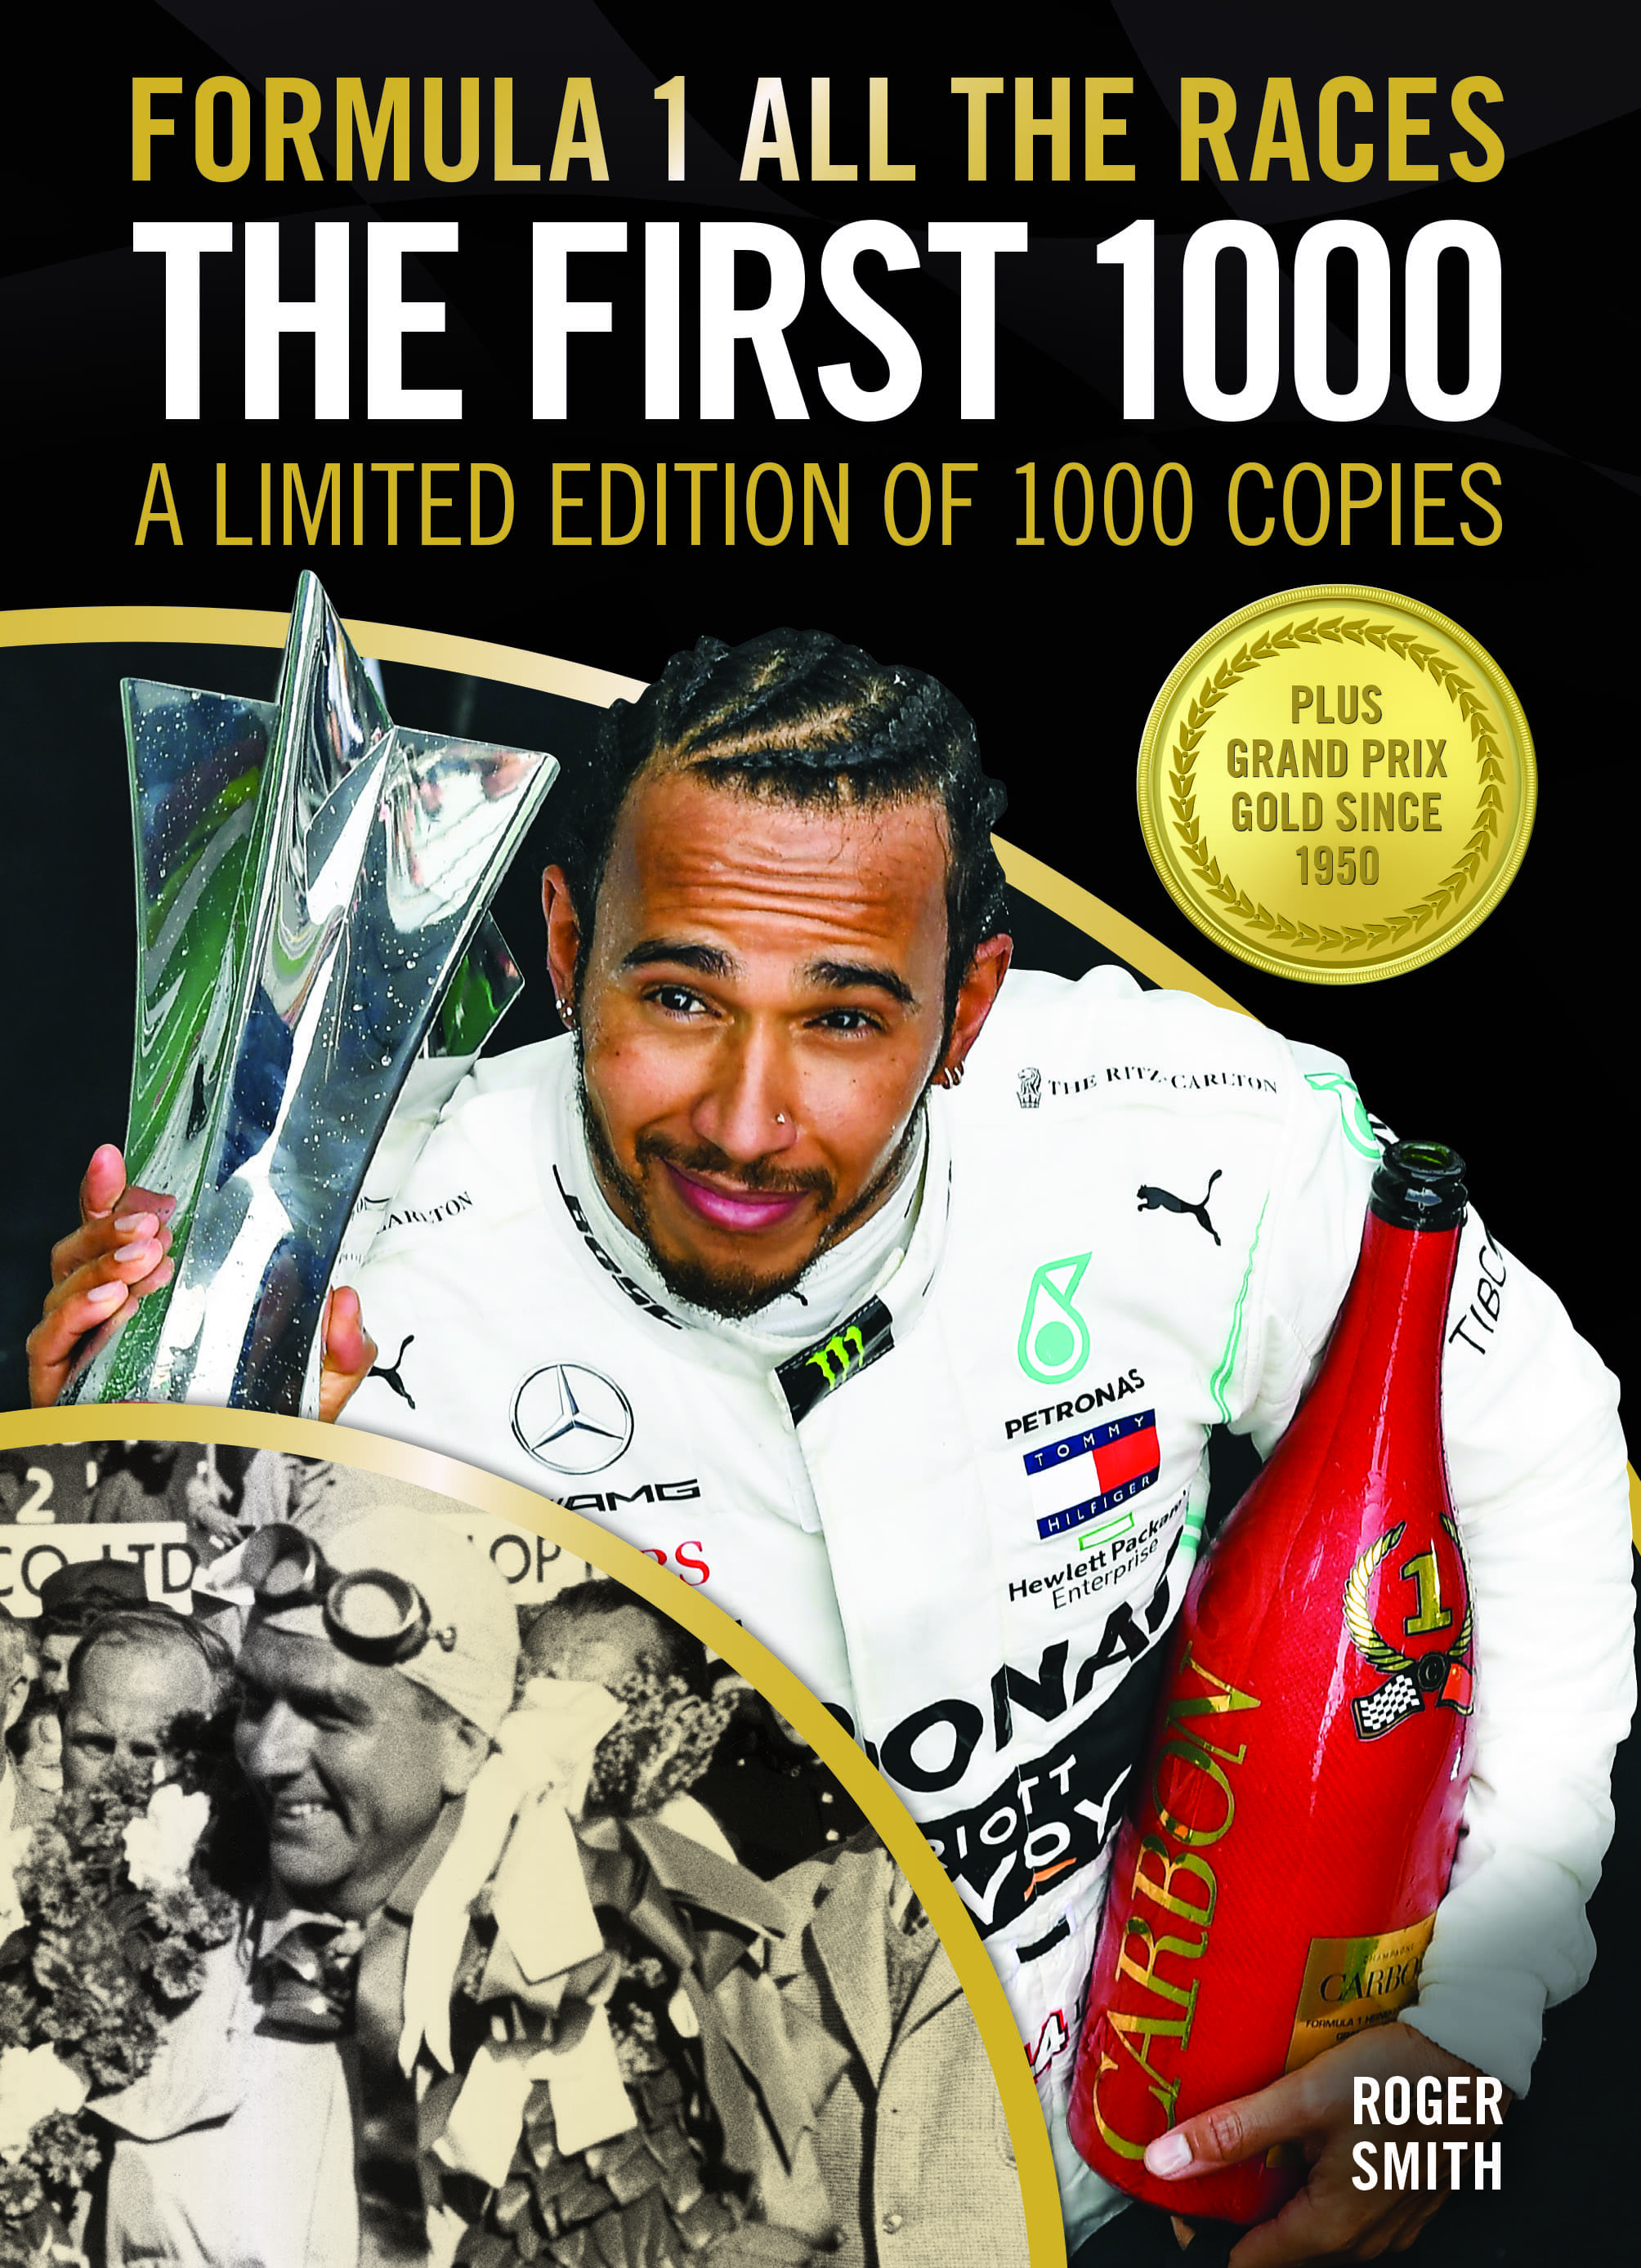 Formula 1 All The Races cover